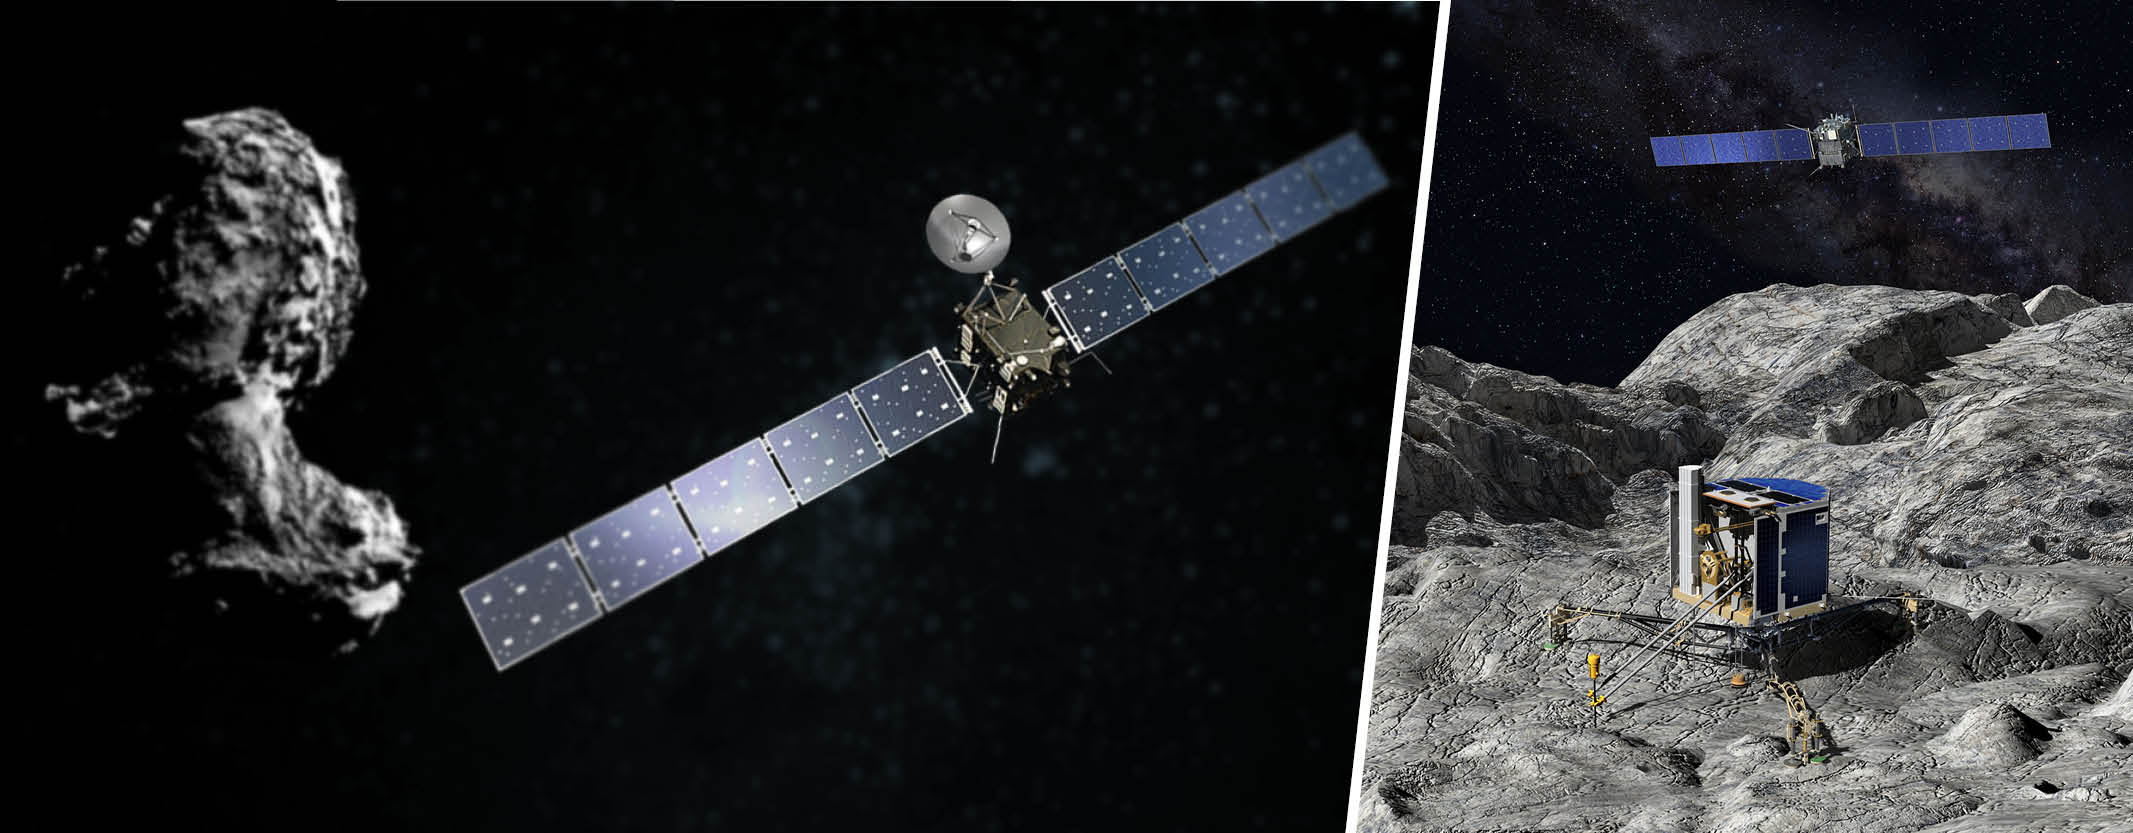 rosetta, philae, syrlinks, space technology, distress beacon, simy